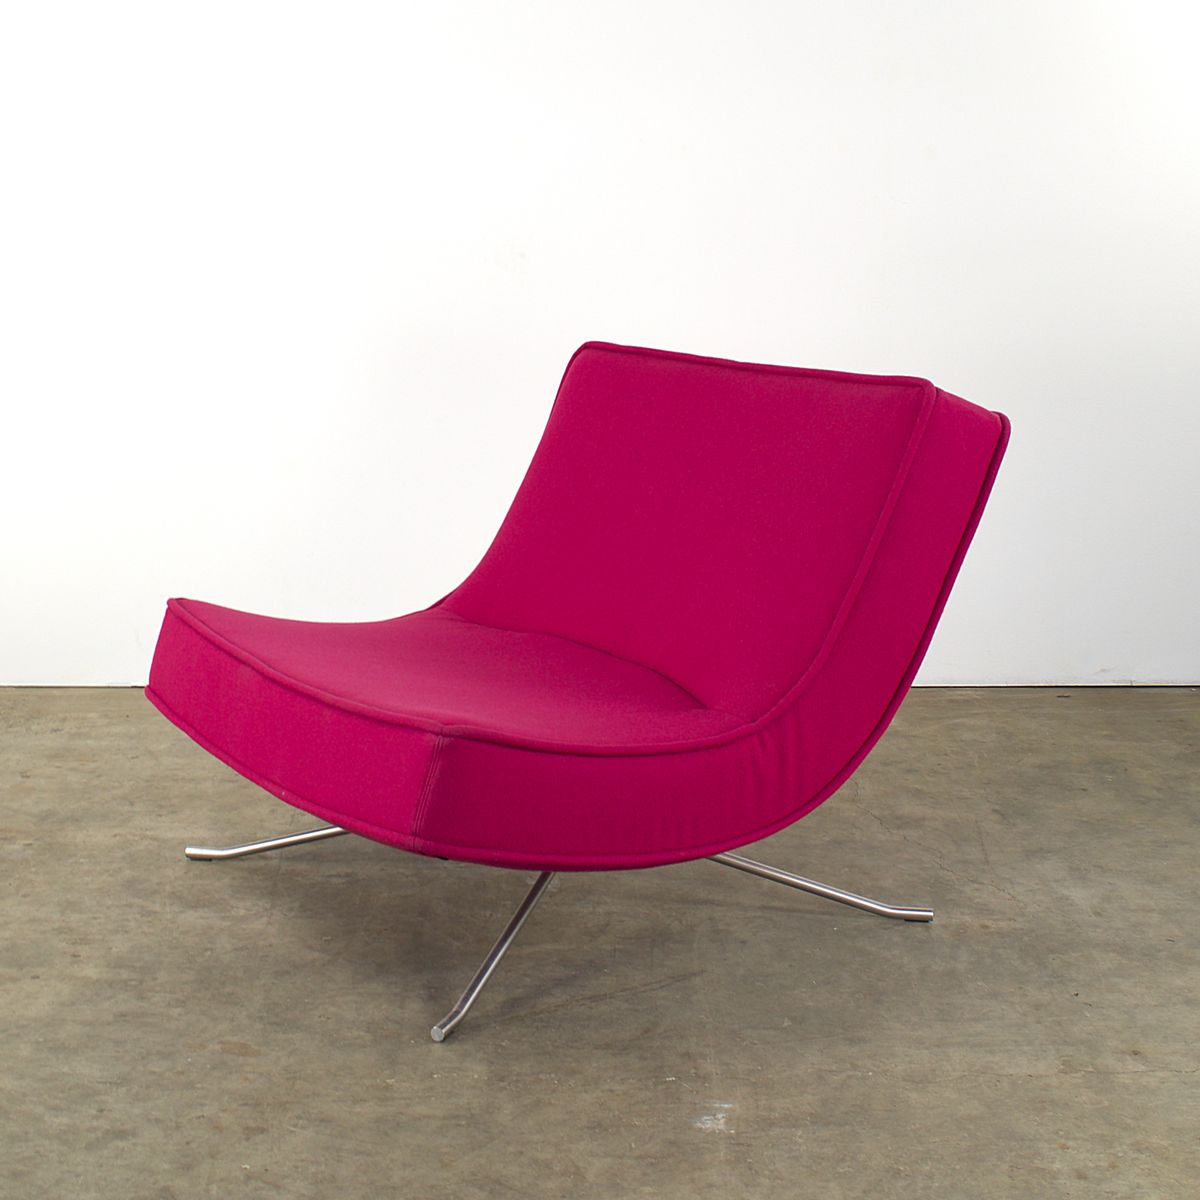 explore french pop easy lounge chair and ottoman by christian